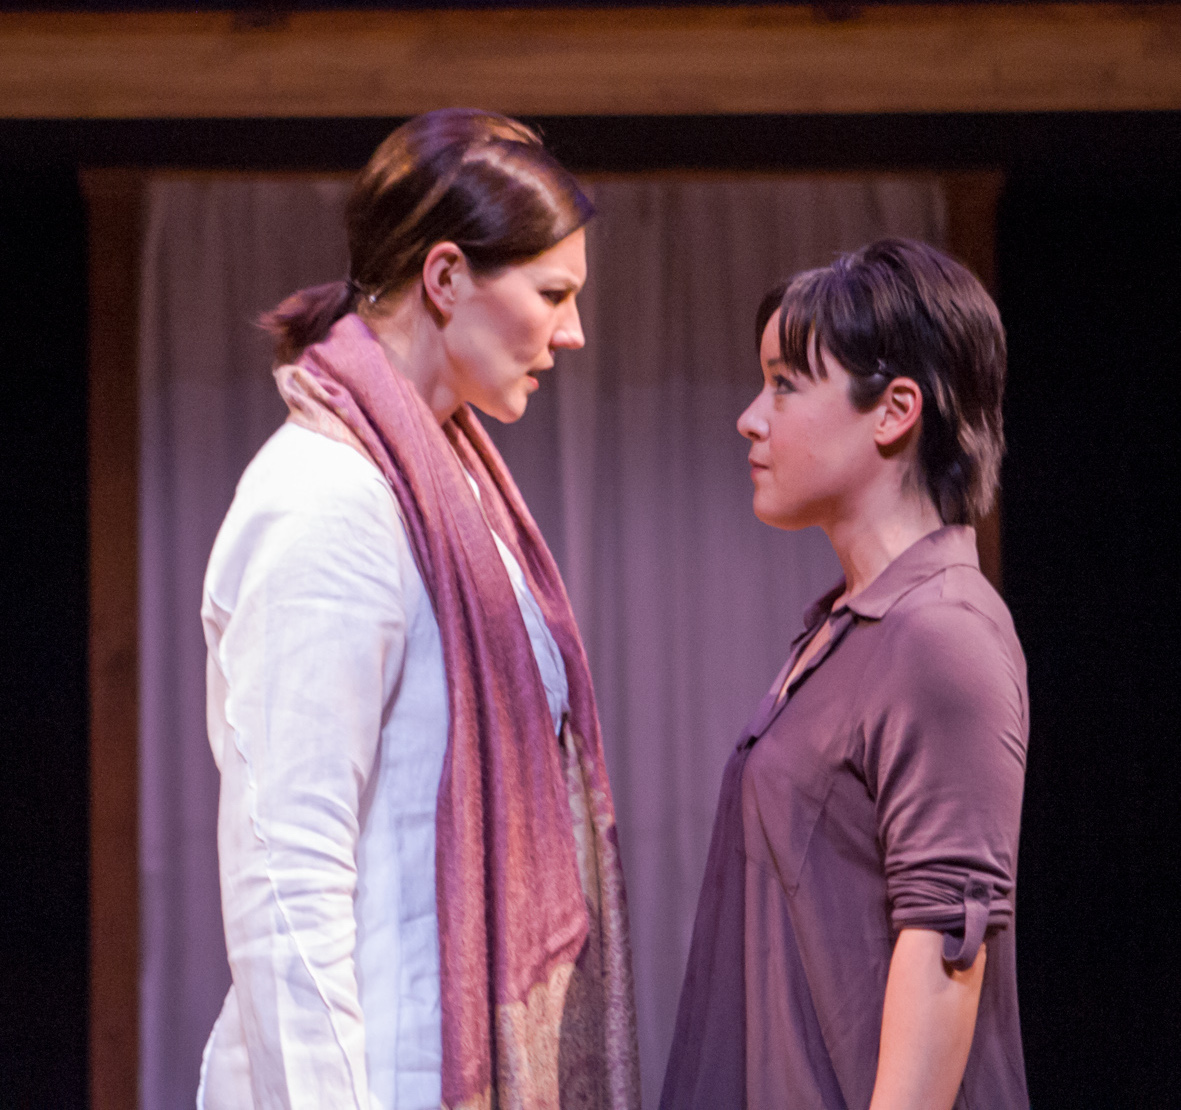 Annemaria Rajala (Sid), Anna Ishida (Raina). Ashby Stage. Photo: Mike Padua.